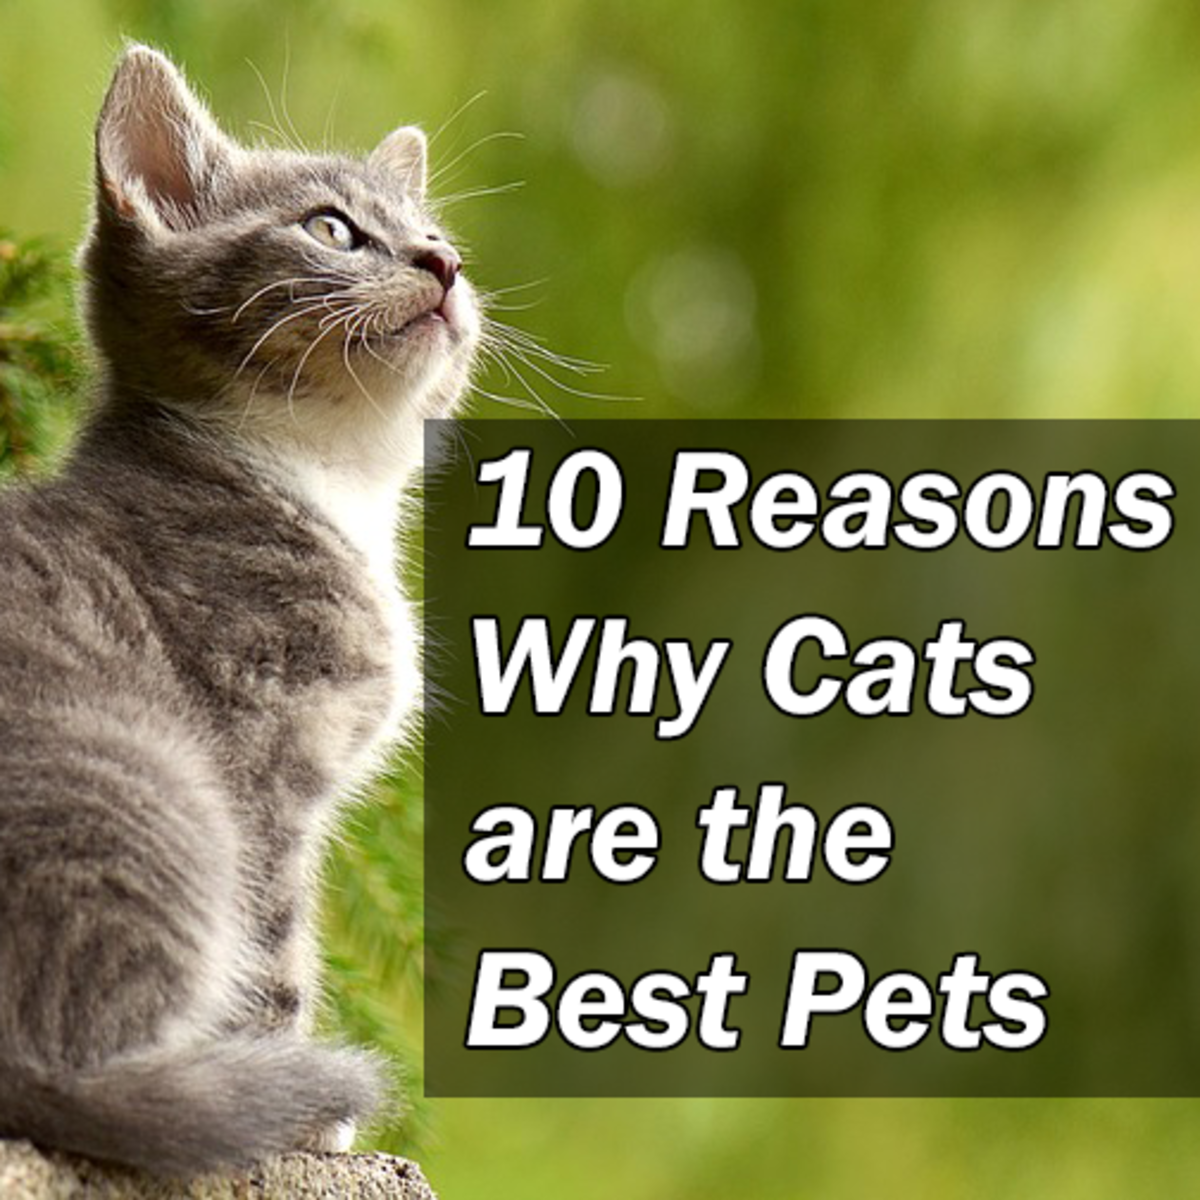 Discover 10 reasons why cats are the best!